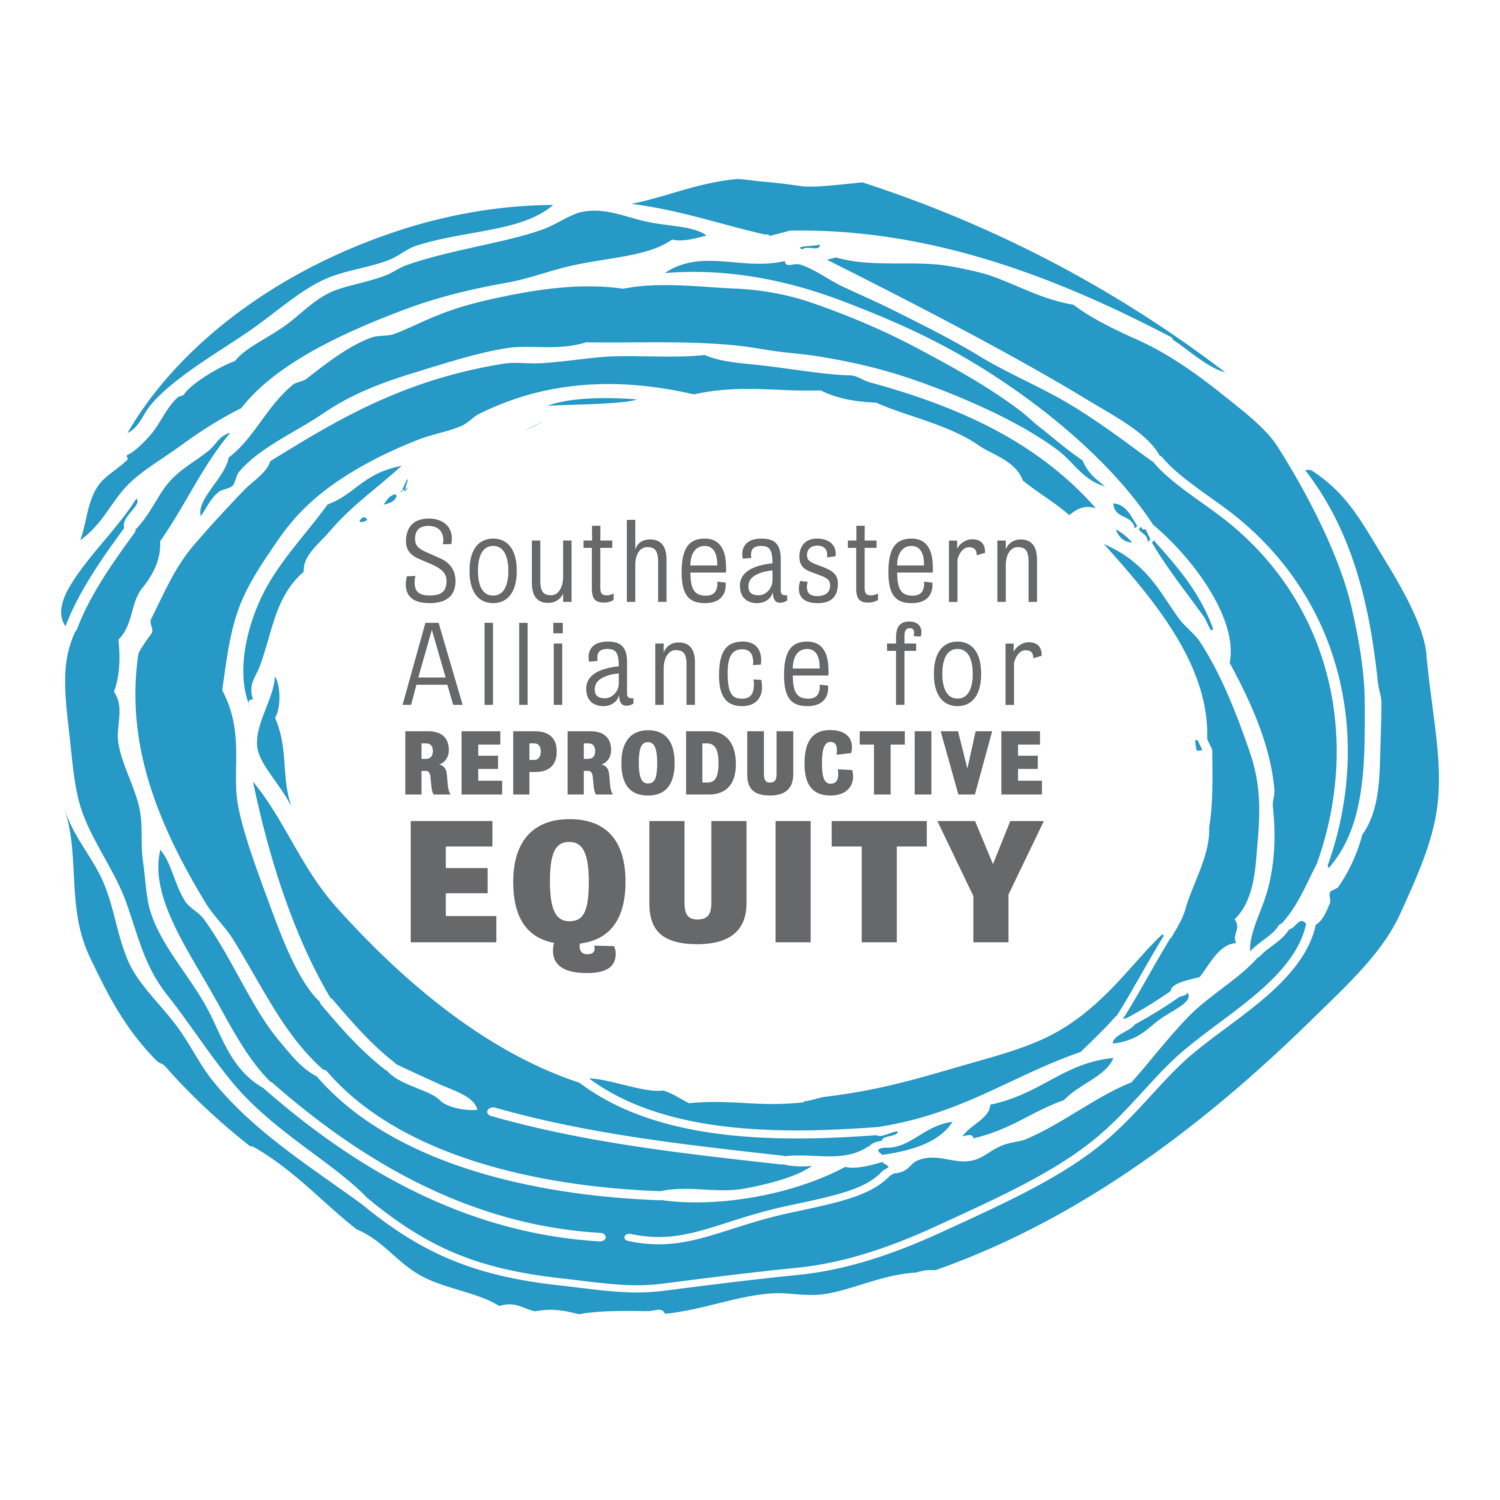 Southeastern Alliance for Reproductive Equity